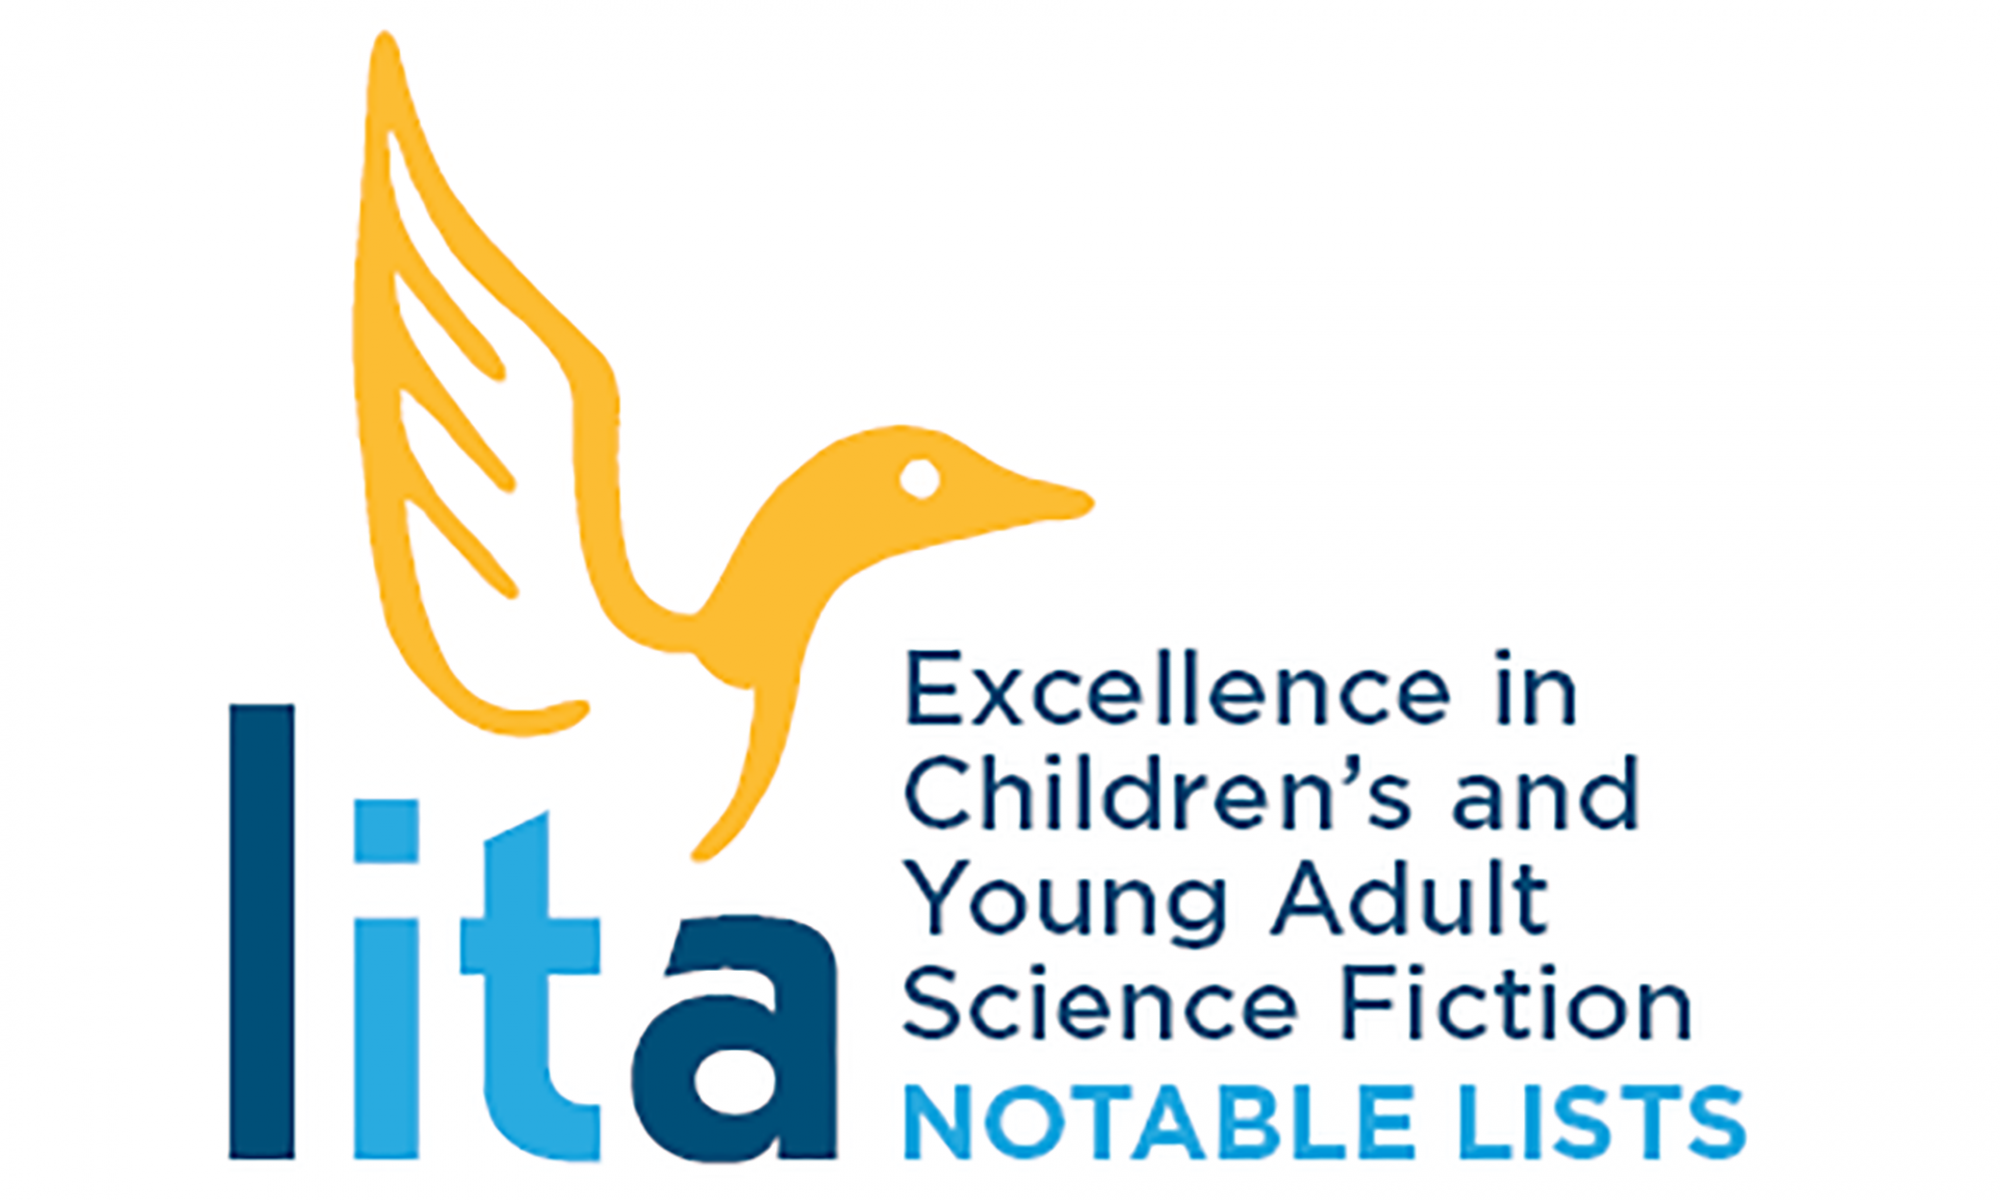 LITA Excellence in Children's and Young Adult Science Fiction Notable Lists